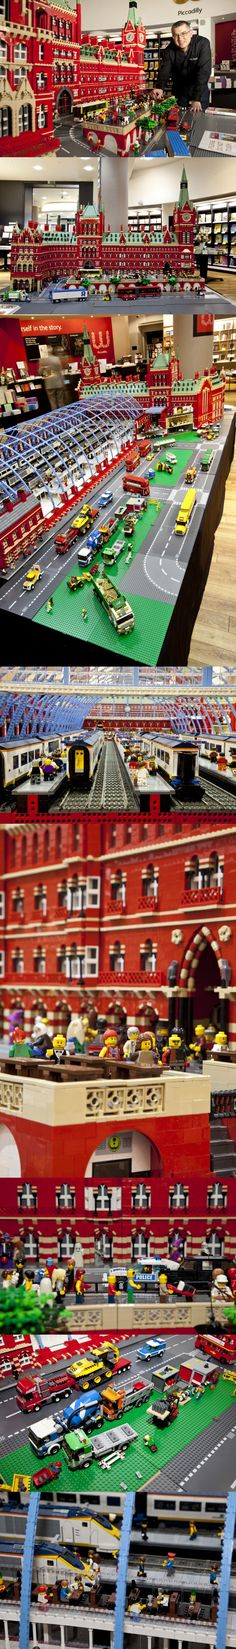 Incredible LEGO St Pancras International Station #LEGO #station